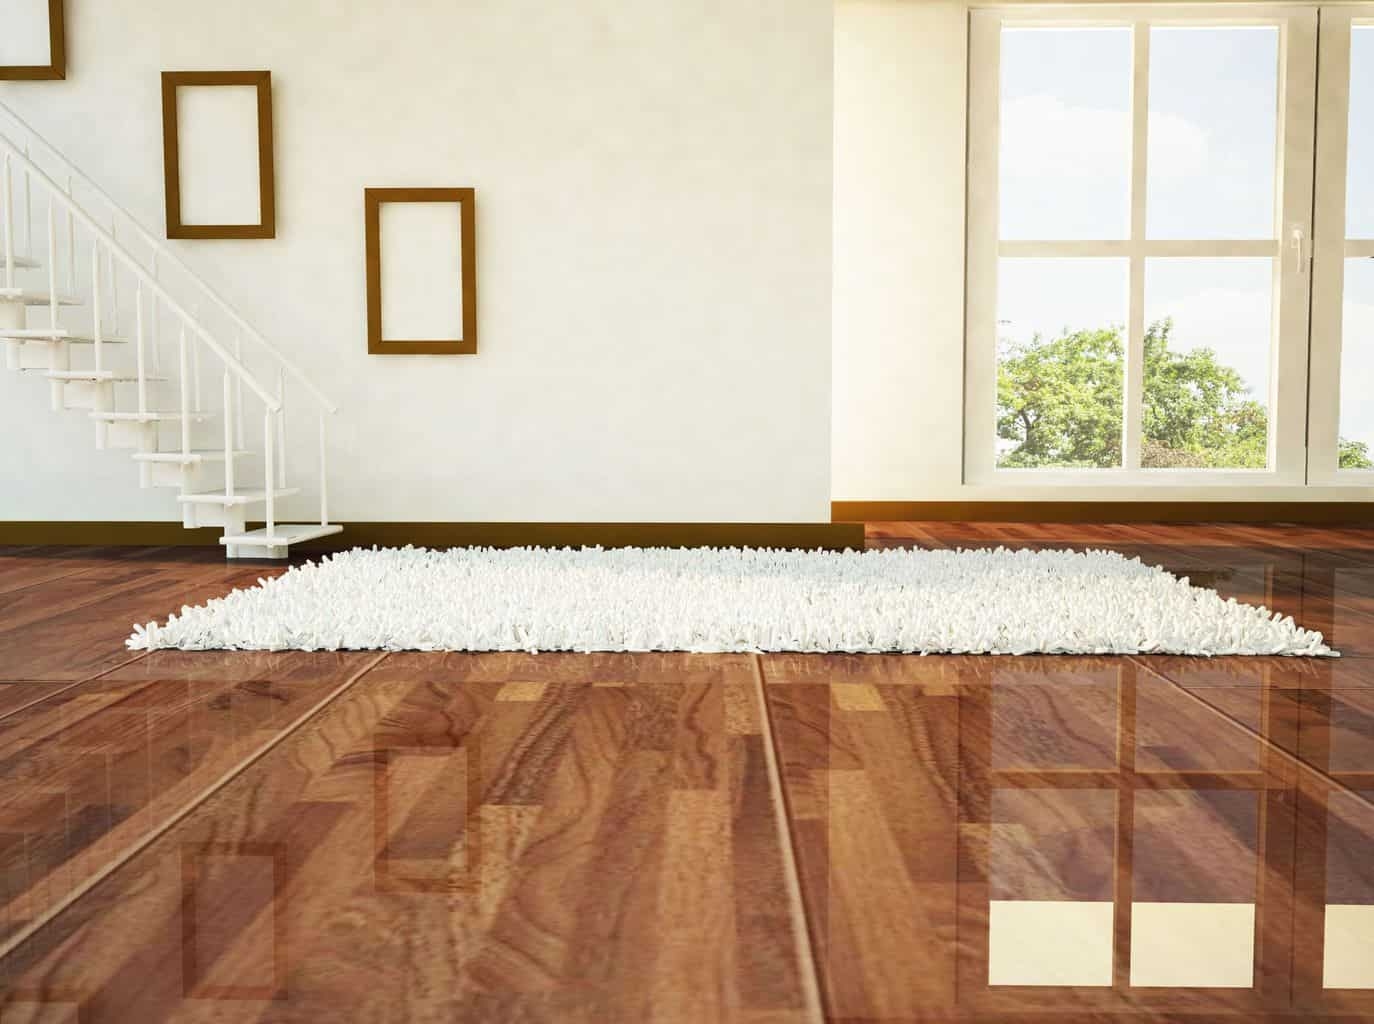 Cleaner For Hardwood Floors how to clean hardwood floors It Is Important To Know That There Are Several Ways That Could Cause Your Hardwood Floors To Look A Little Dull So With The Proper Treatment